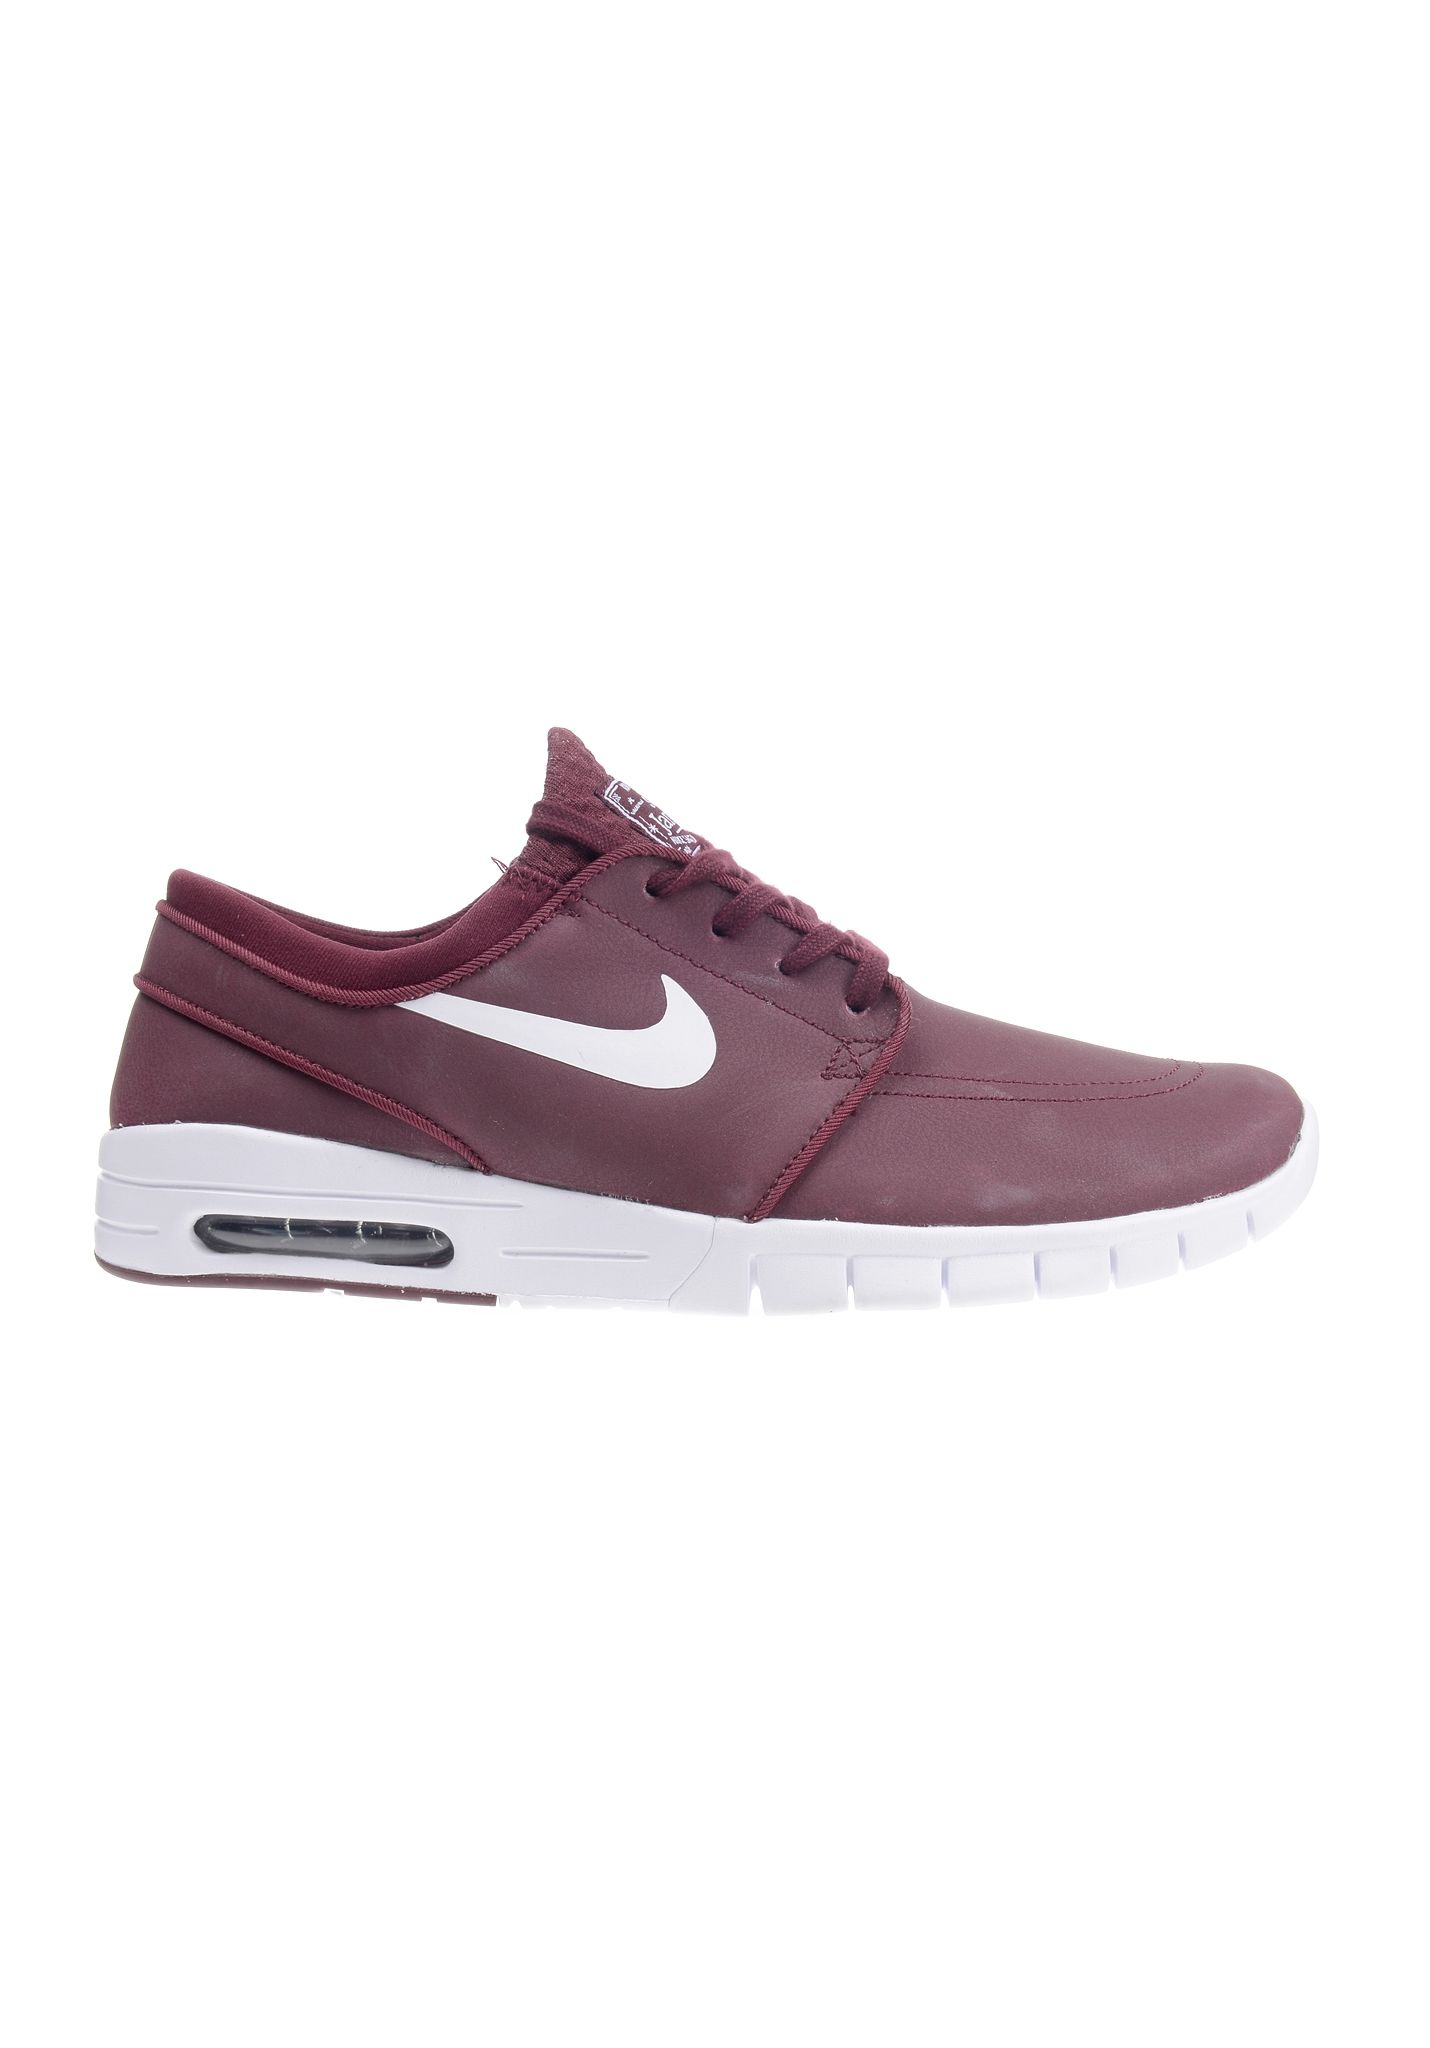 new arrivals d631a 82b85 NIKE SB Stefan Janoski Max L - Sneakers for Men - Red - Planet Sports